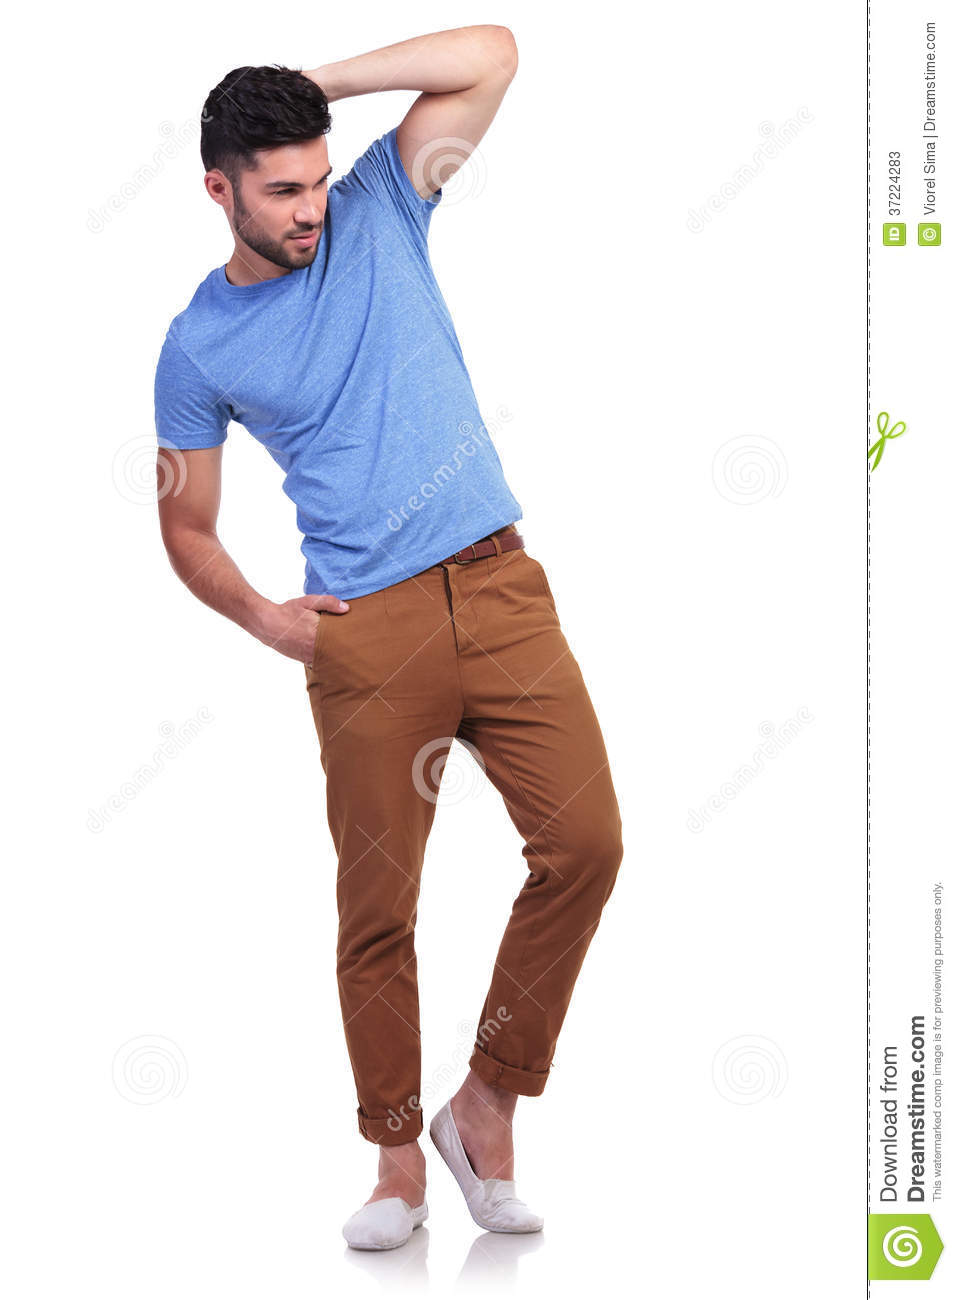 Full Body Of A Relaxed Man Looking Away Stock Photos - Image: 37224283